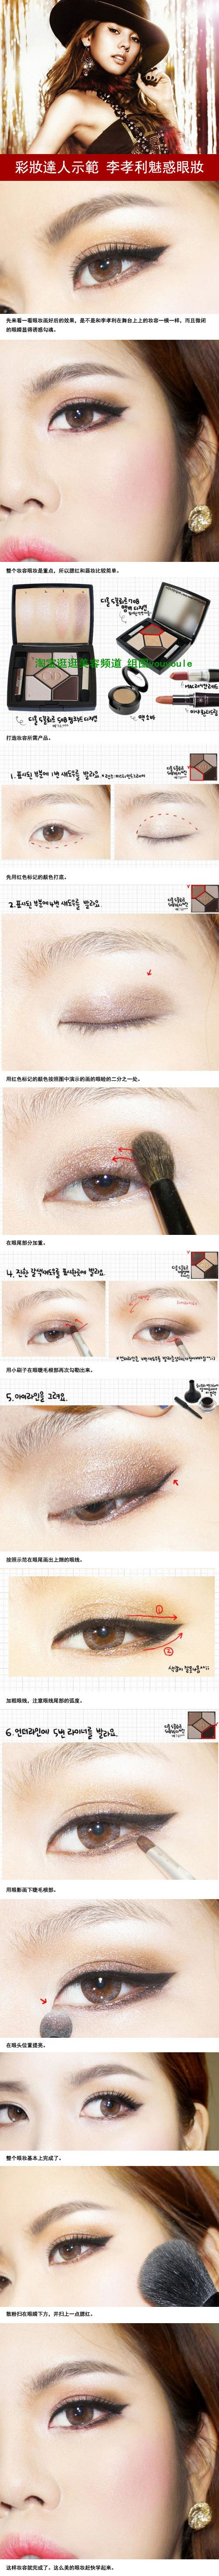 best make up images on pinterest beauty makeup hair dos and